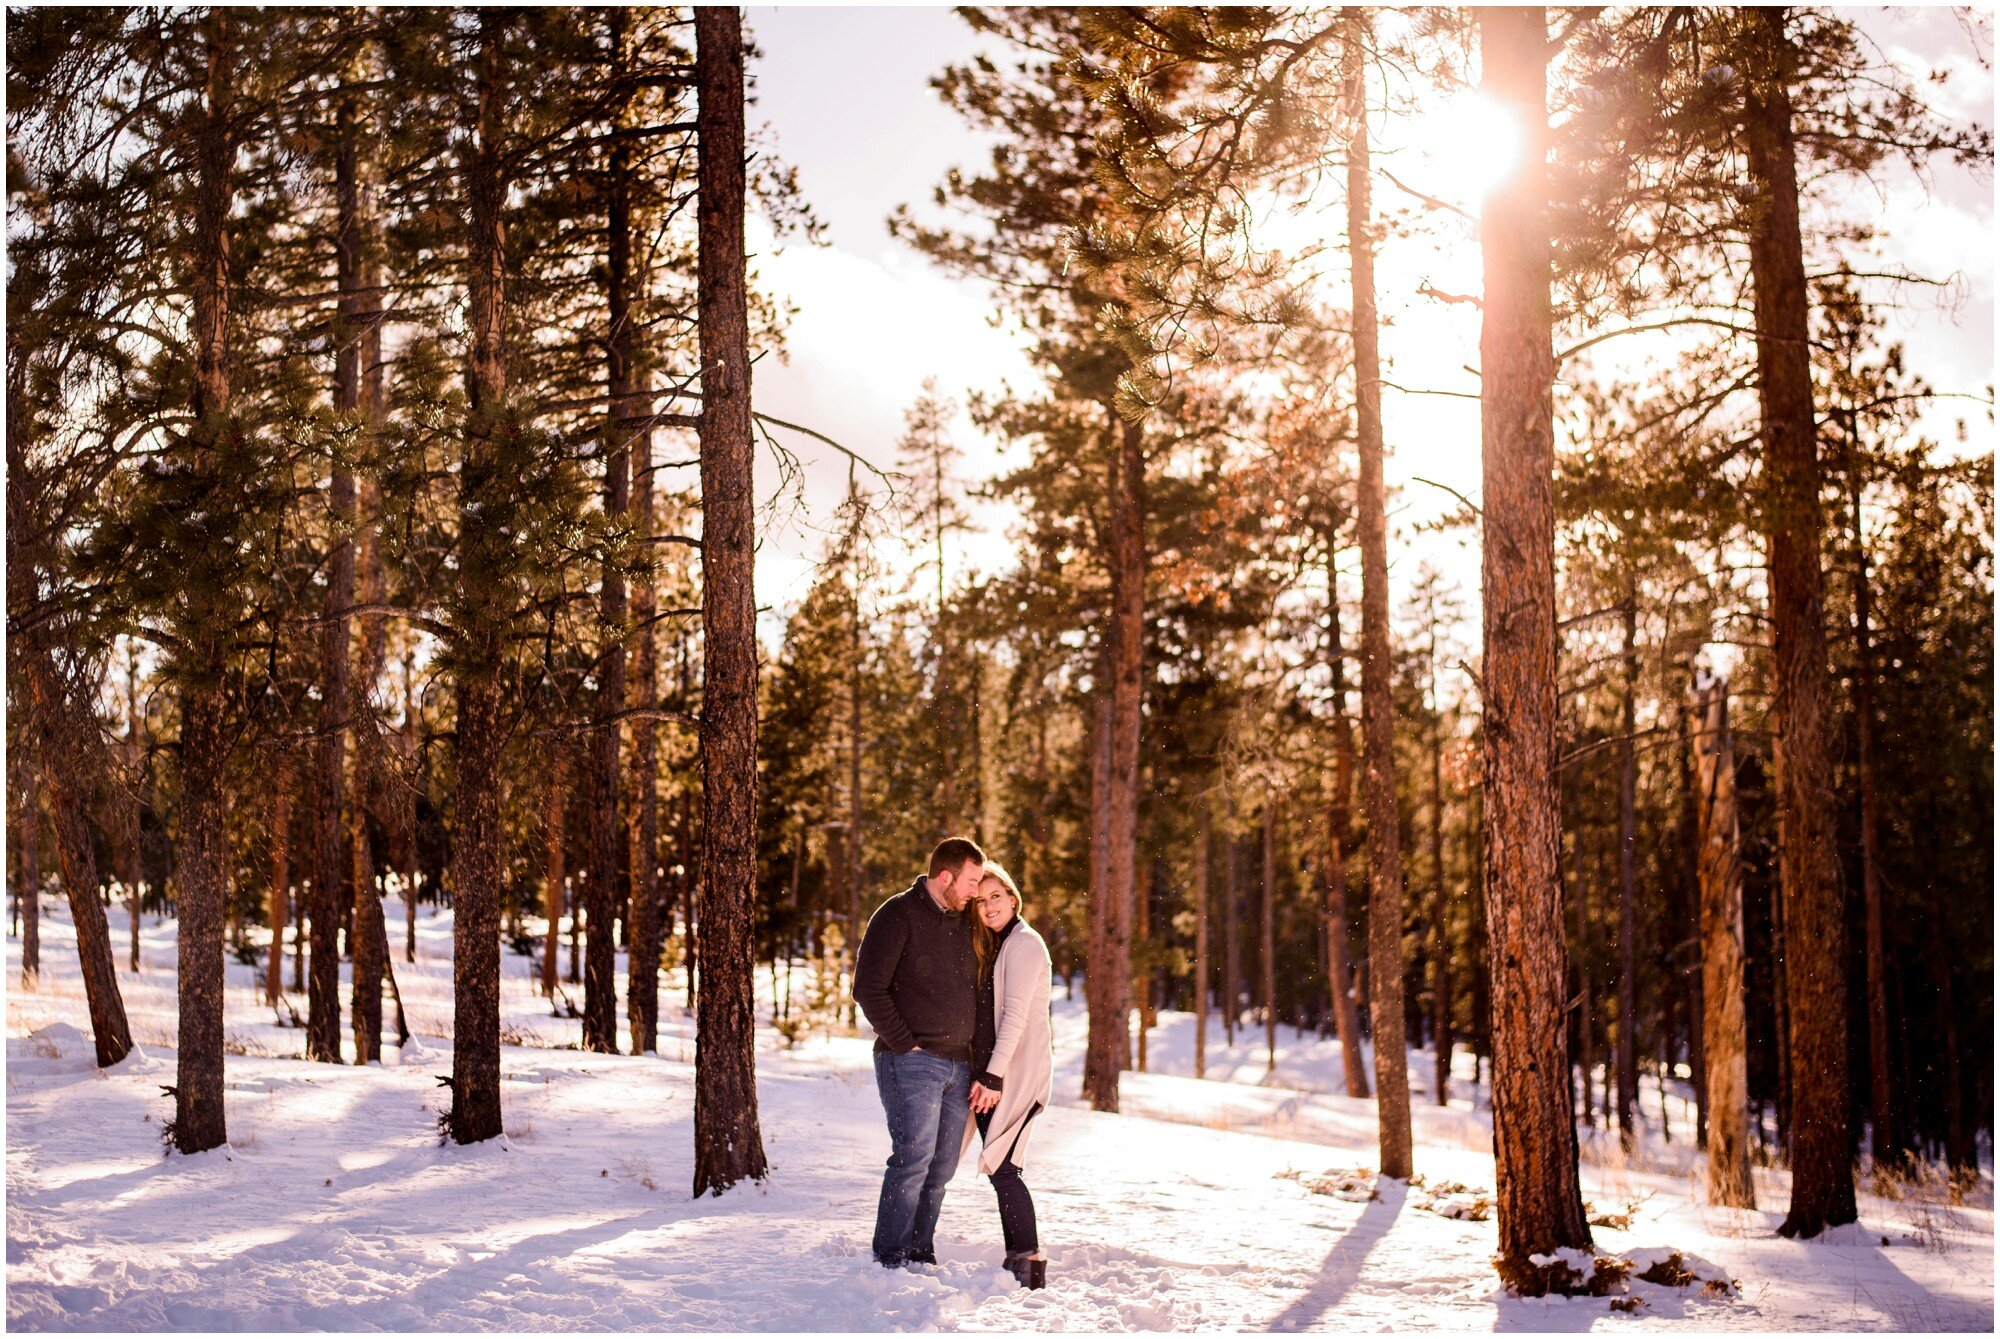 Sunny Winter engagement photo in Colorado mountains